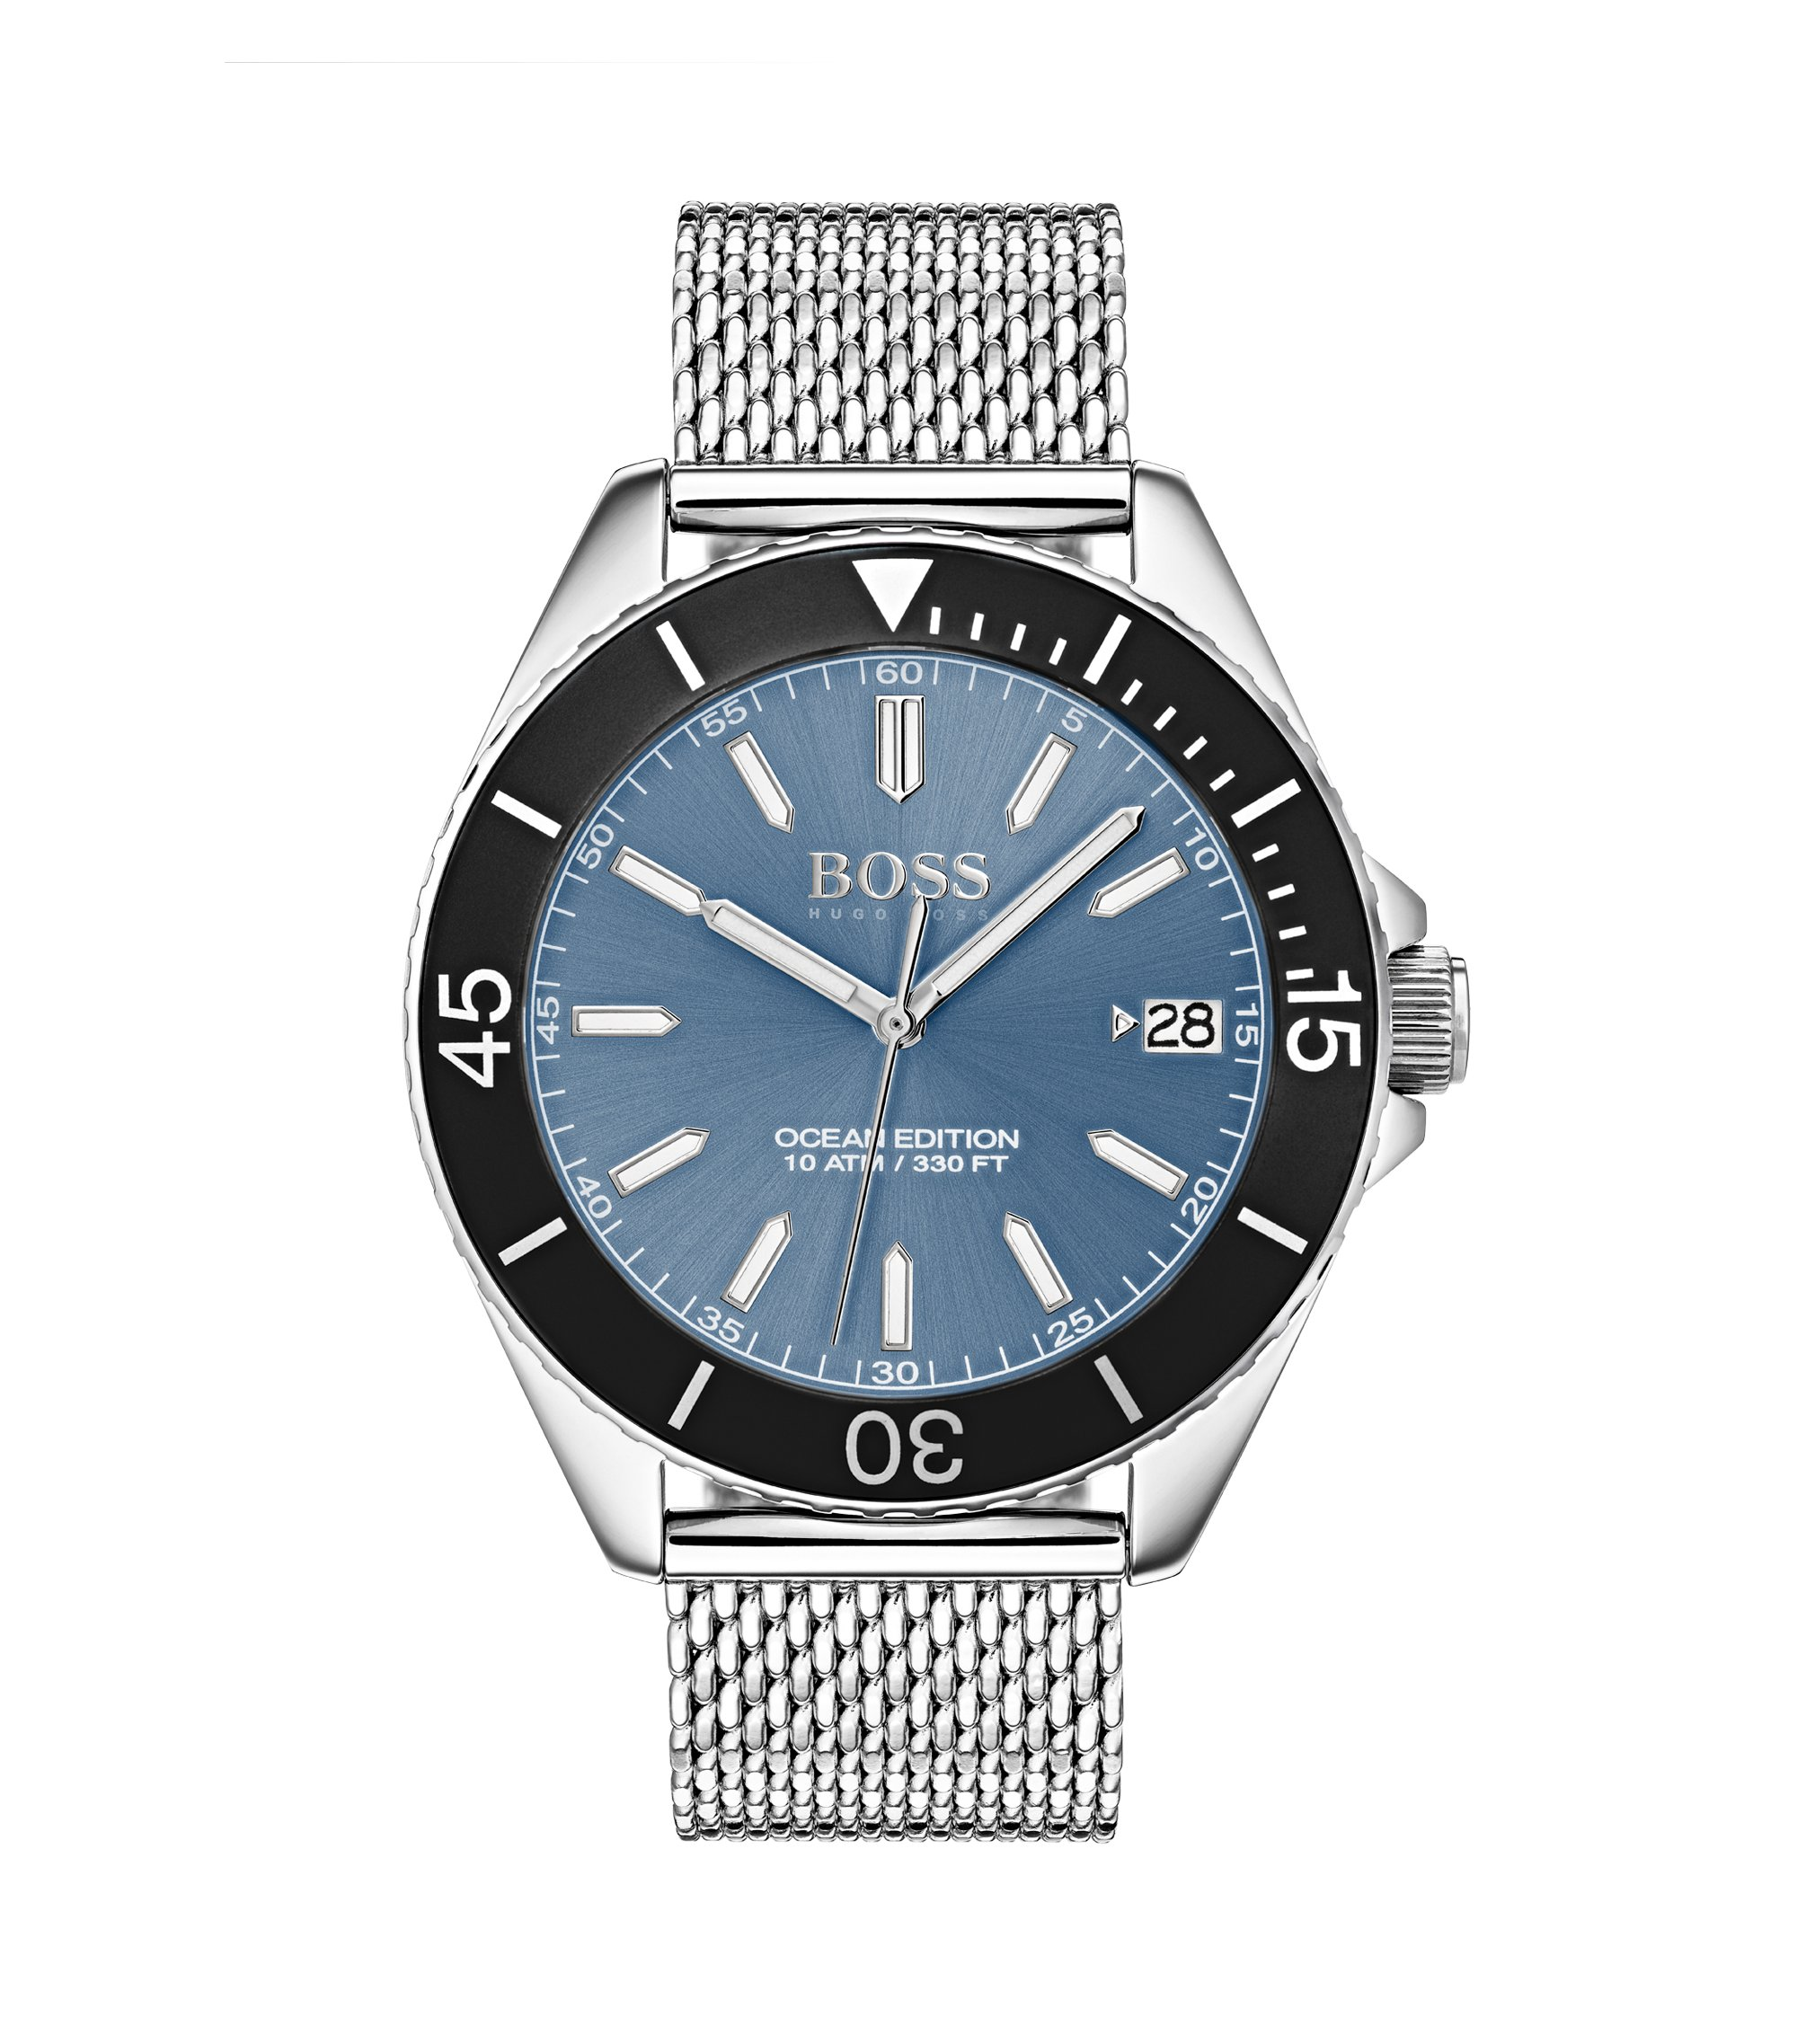 Stainless-steel watch with rotating bezel, luminova details and mesh bracelet, Silver